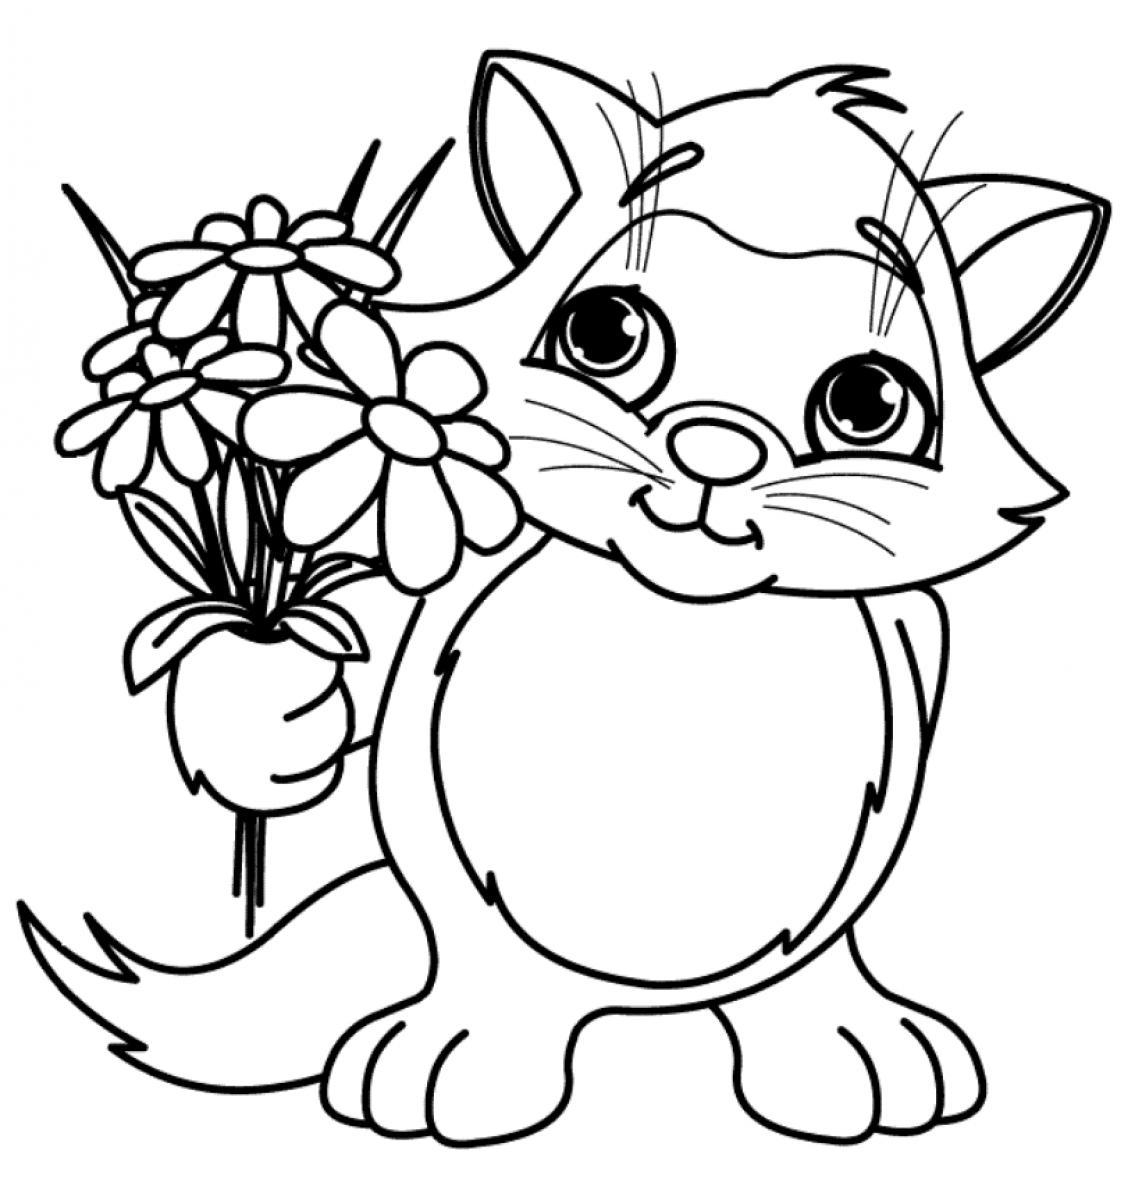 images of flowers to color pretty flower for pretty flower bouquet coloring page color to of flowers images